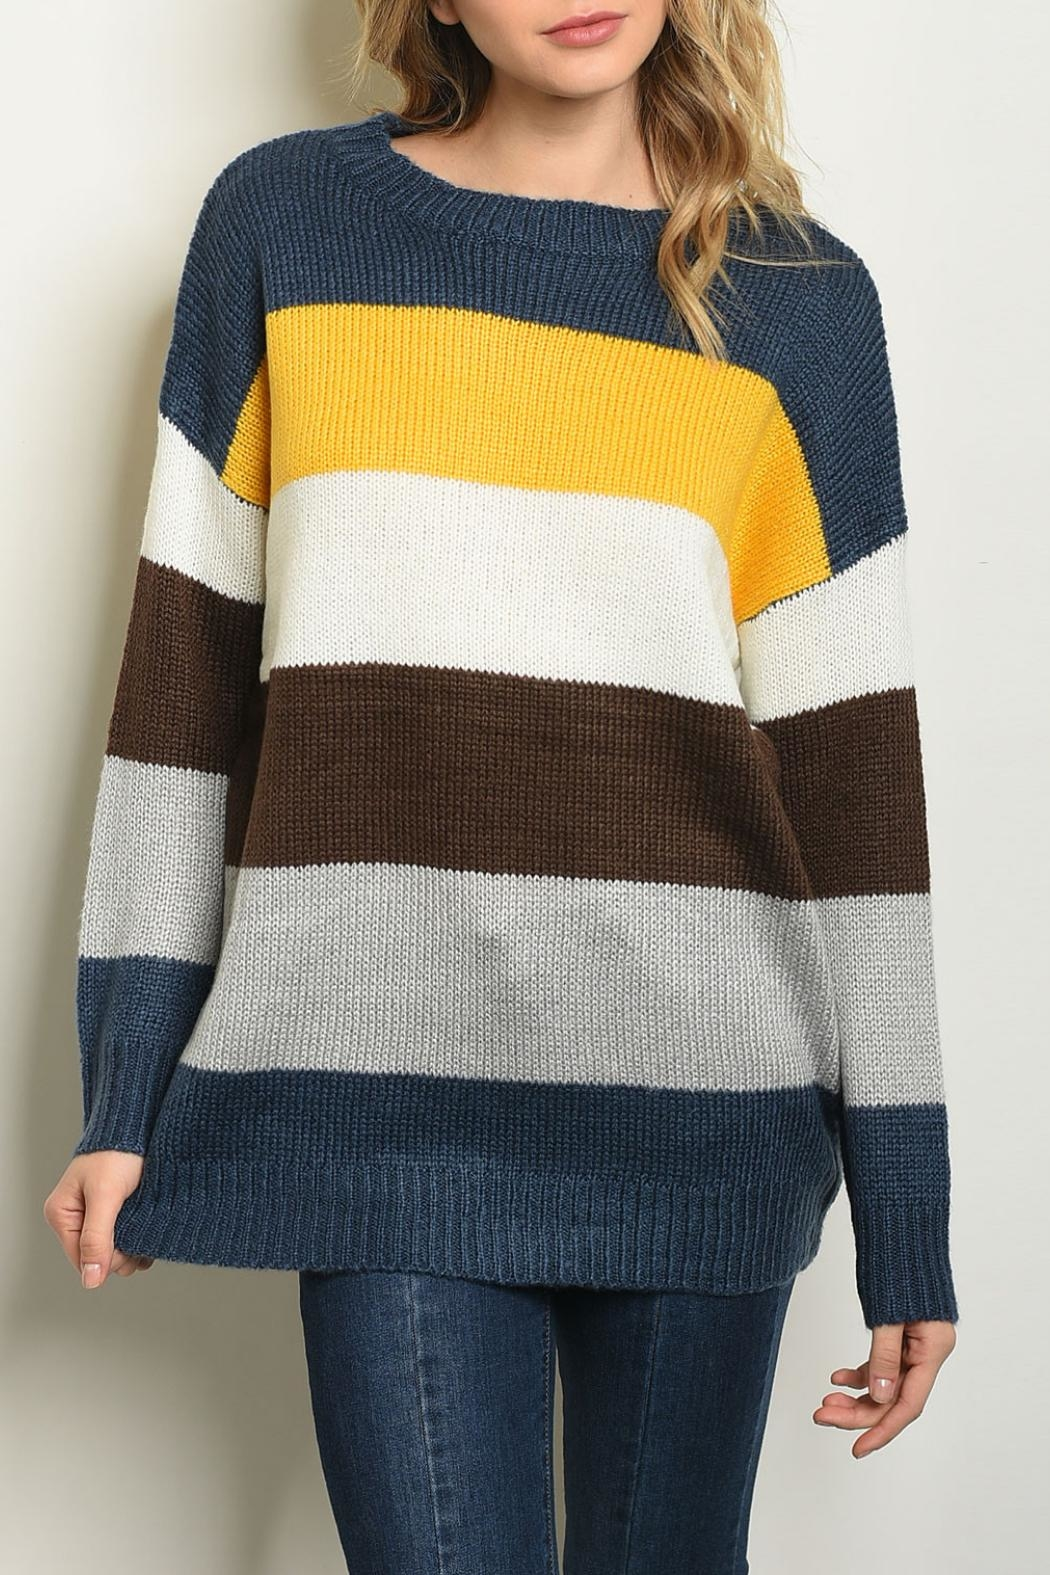 Shop The Trends  Yellow Multi Sweater - Main Image